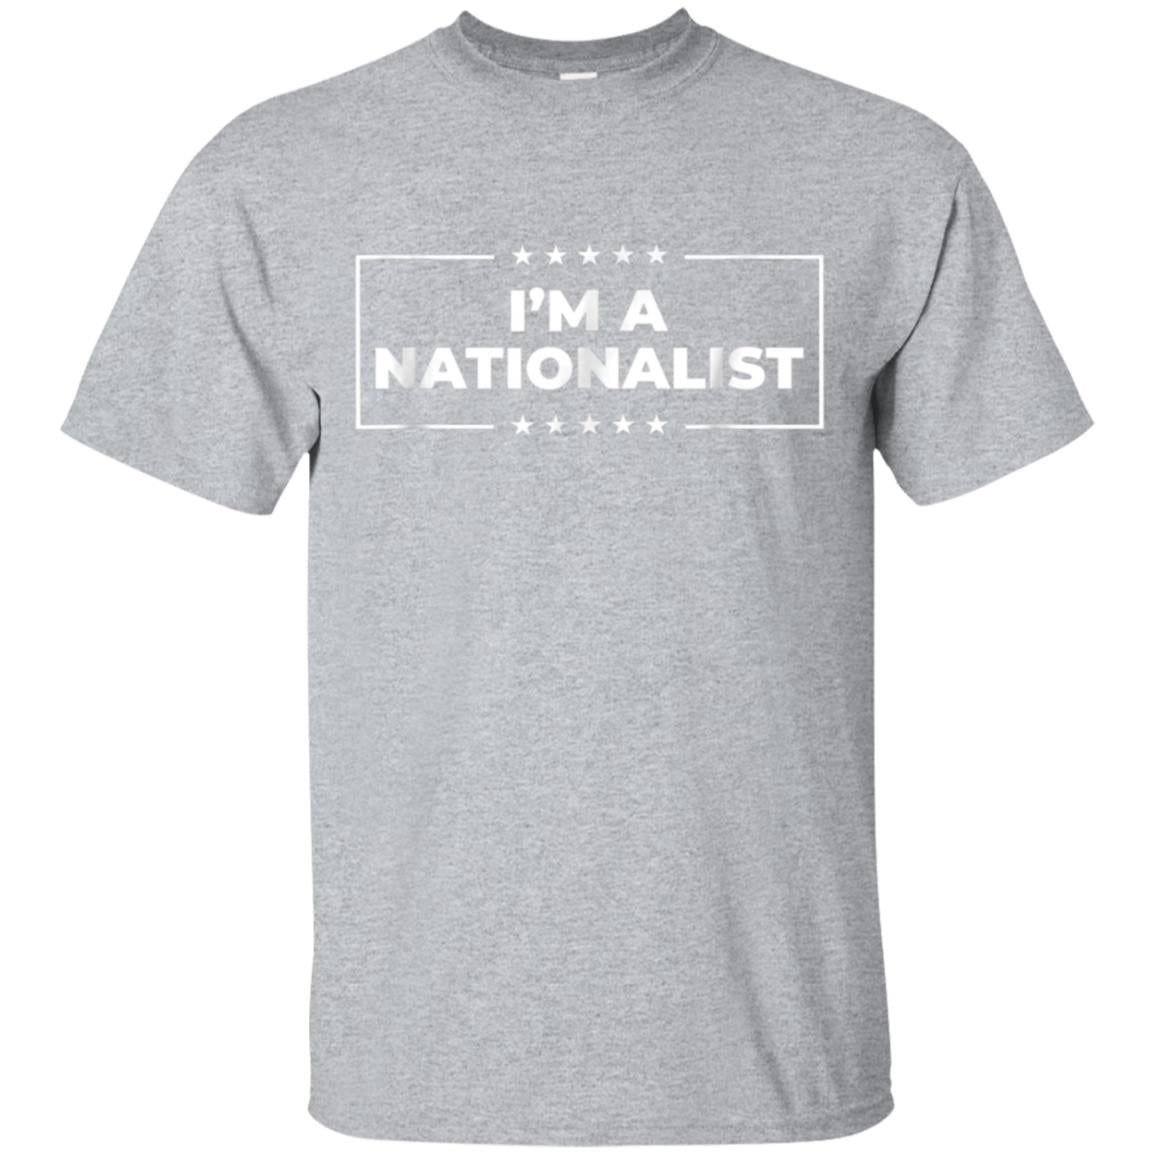 I'm A Nationalist T-Shirt 99promocode